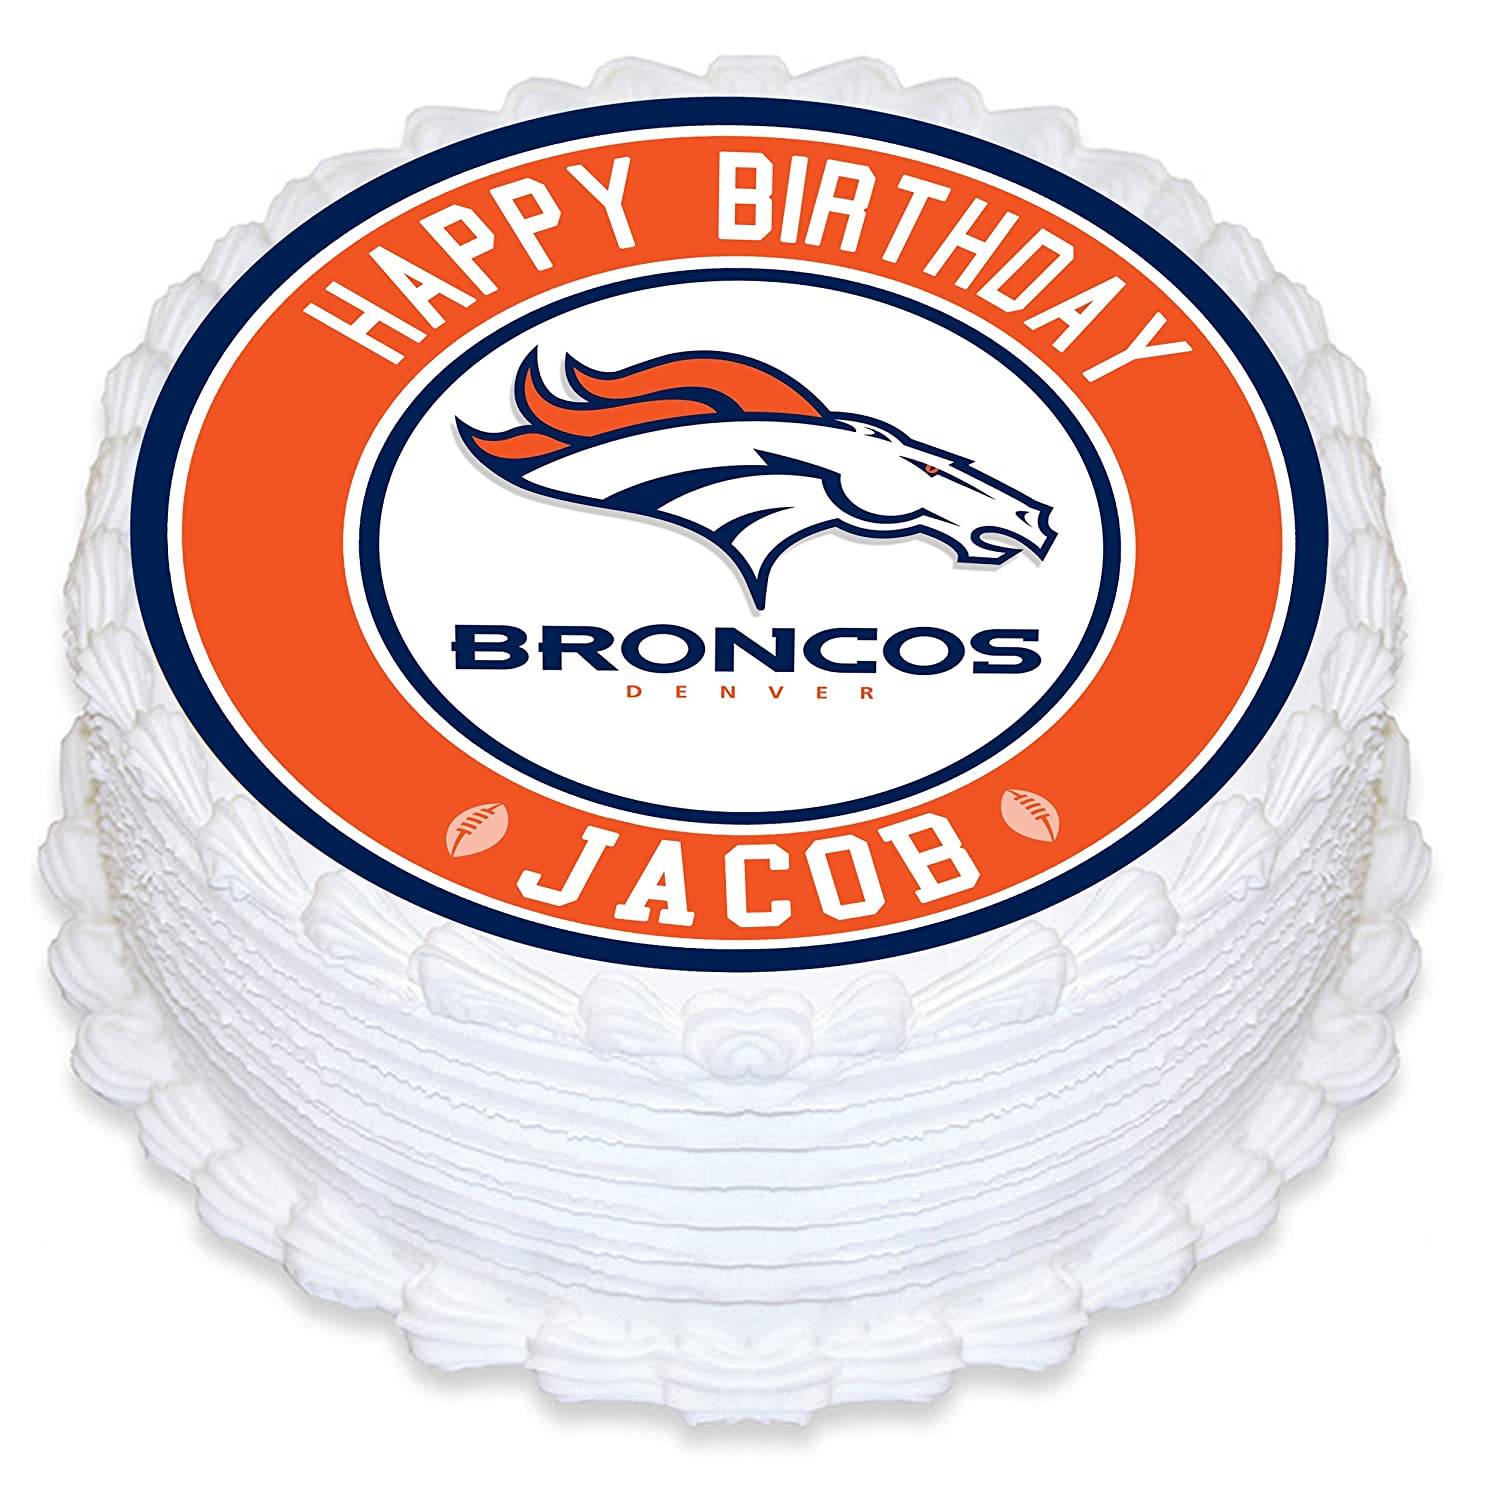 Denver Broncos Edible Image Cake Topper Personalized Birthday 8 Round Circle Decoration Custom Sheet Party Sugar Frosting Transfer Fondant